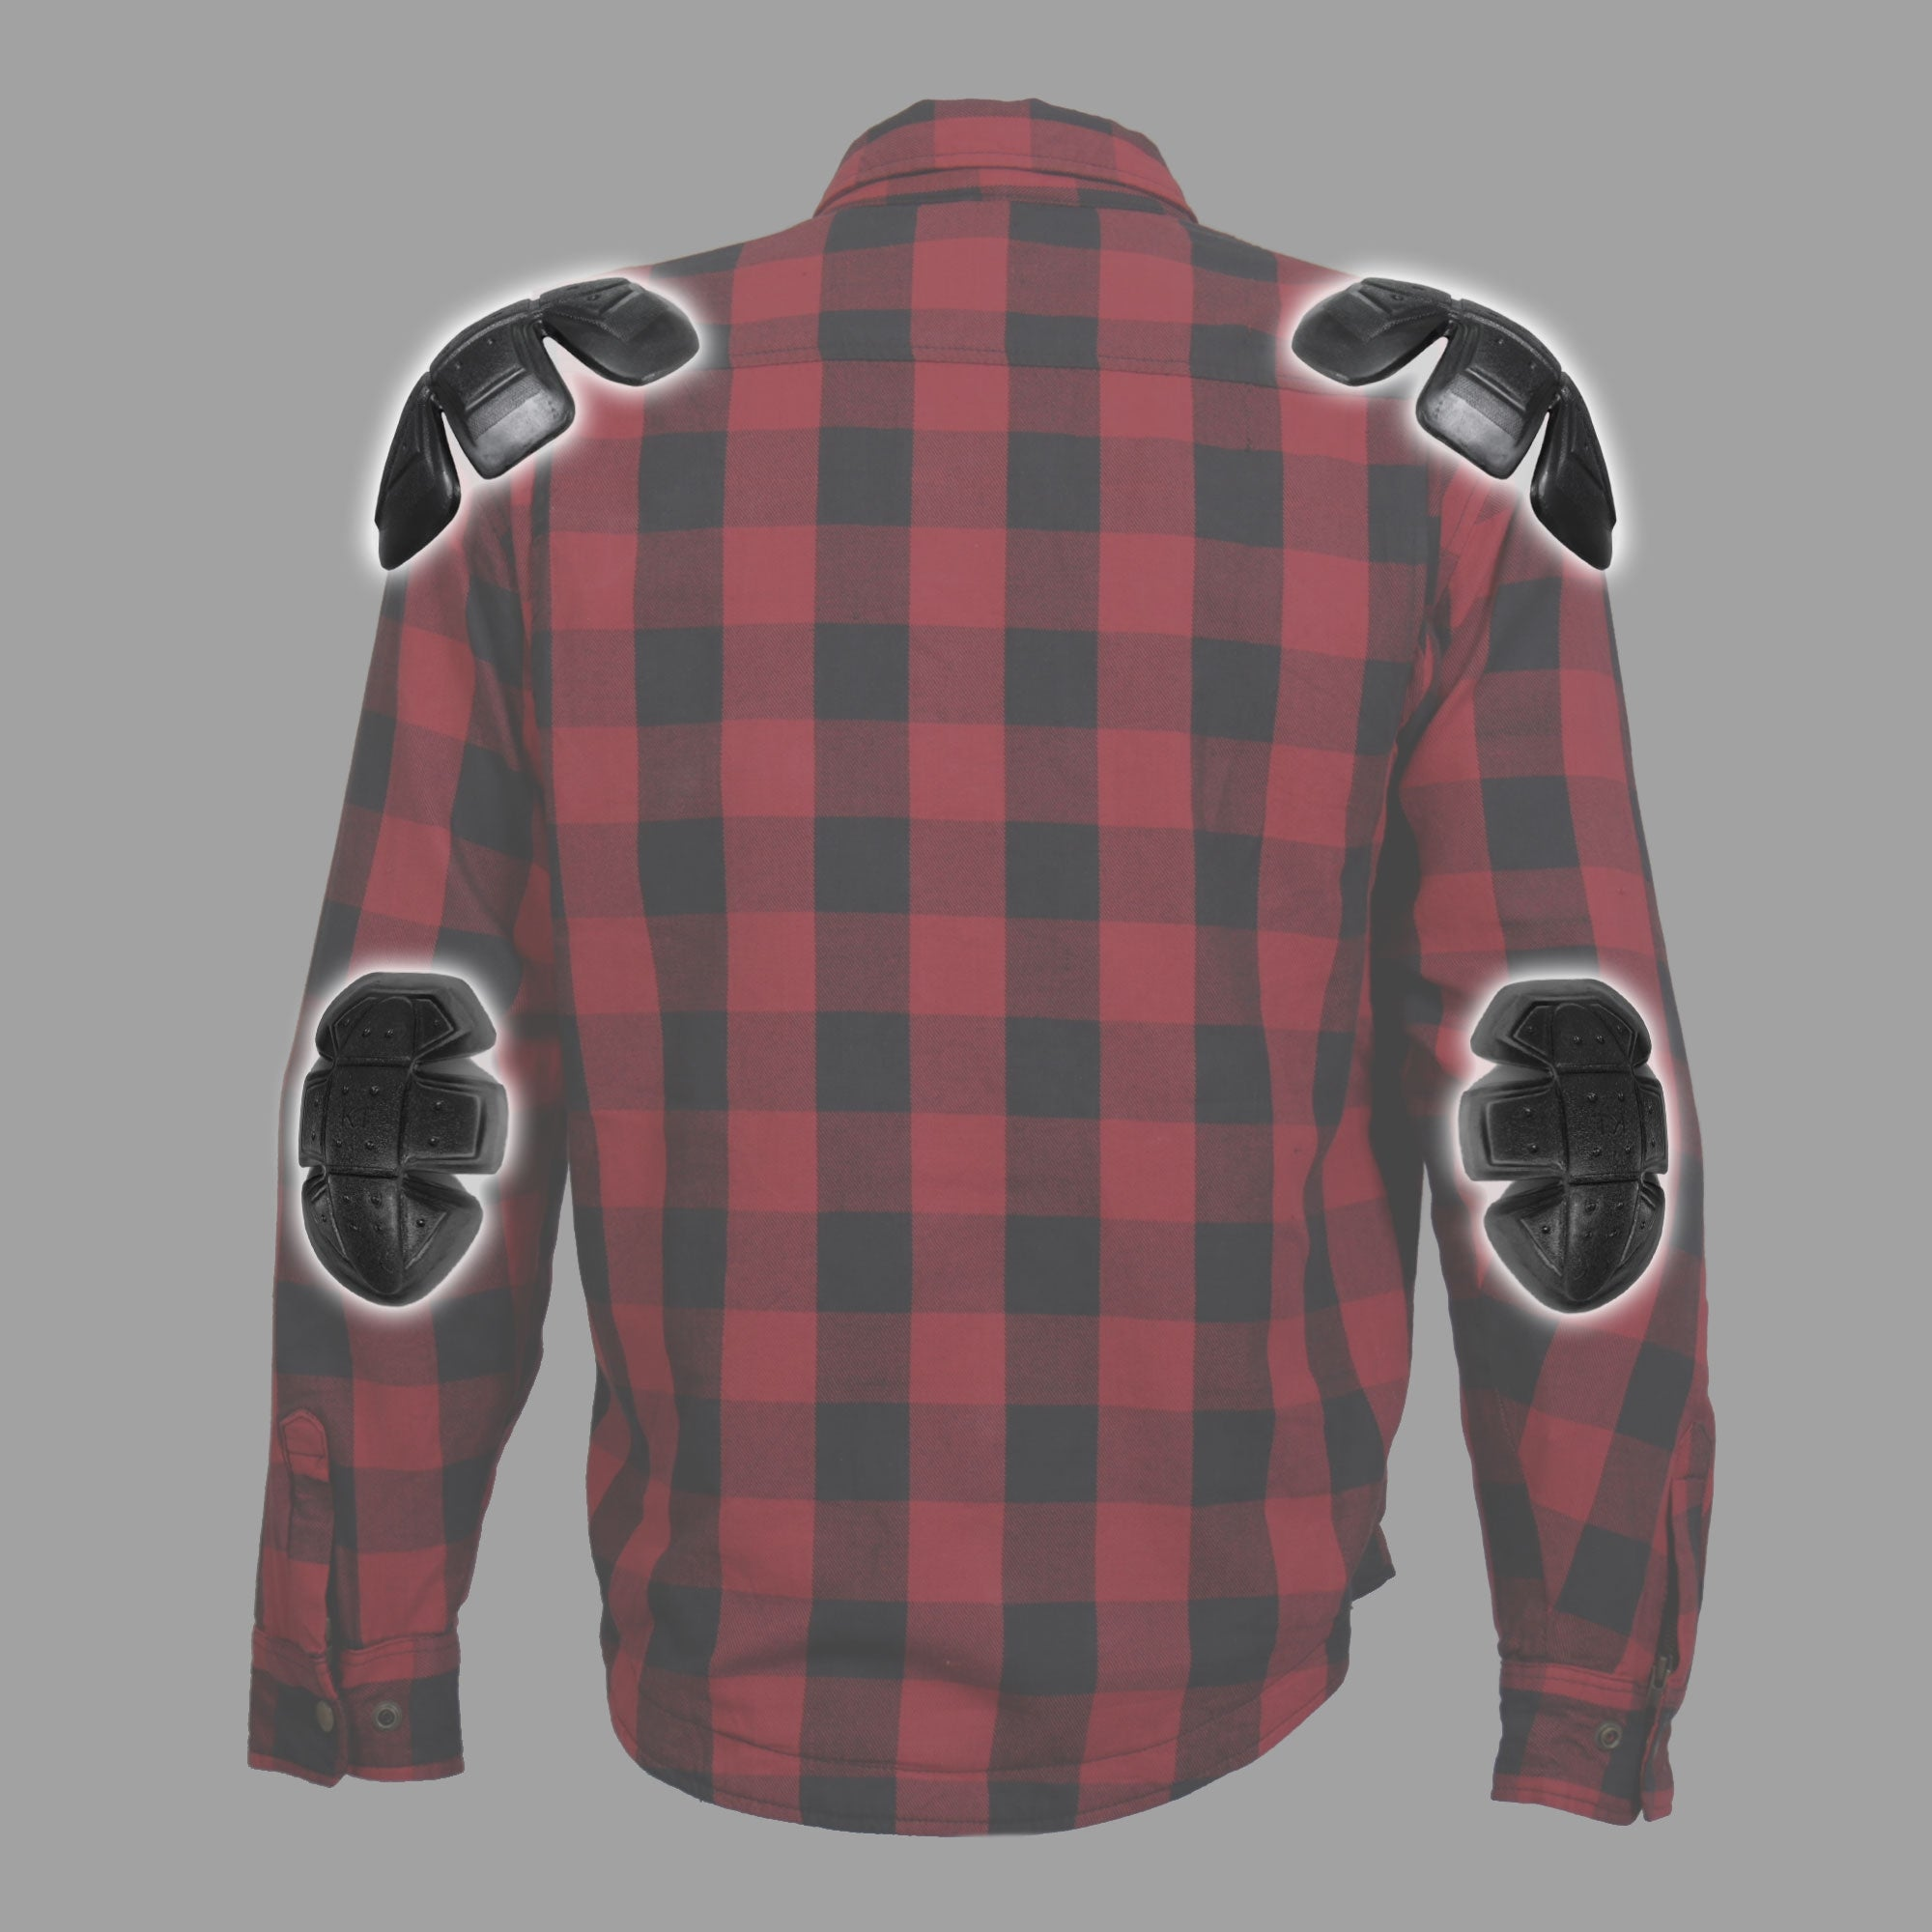 Hot Leathers Red and Black Armored Flannel Jacket